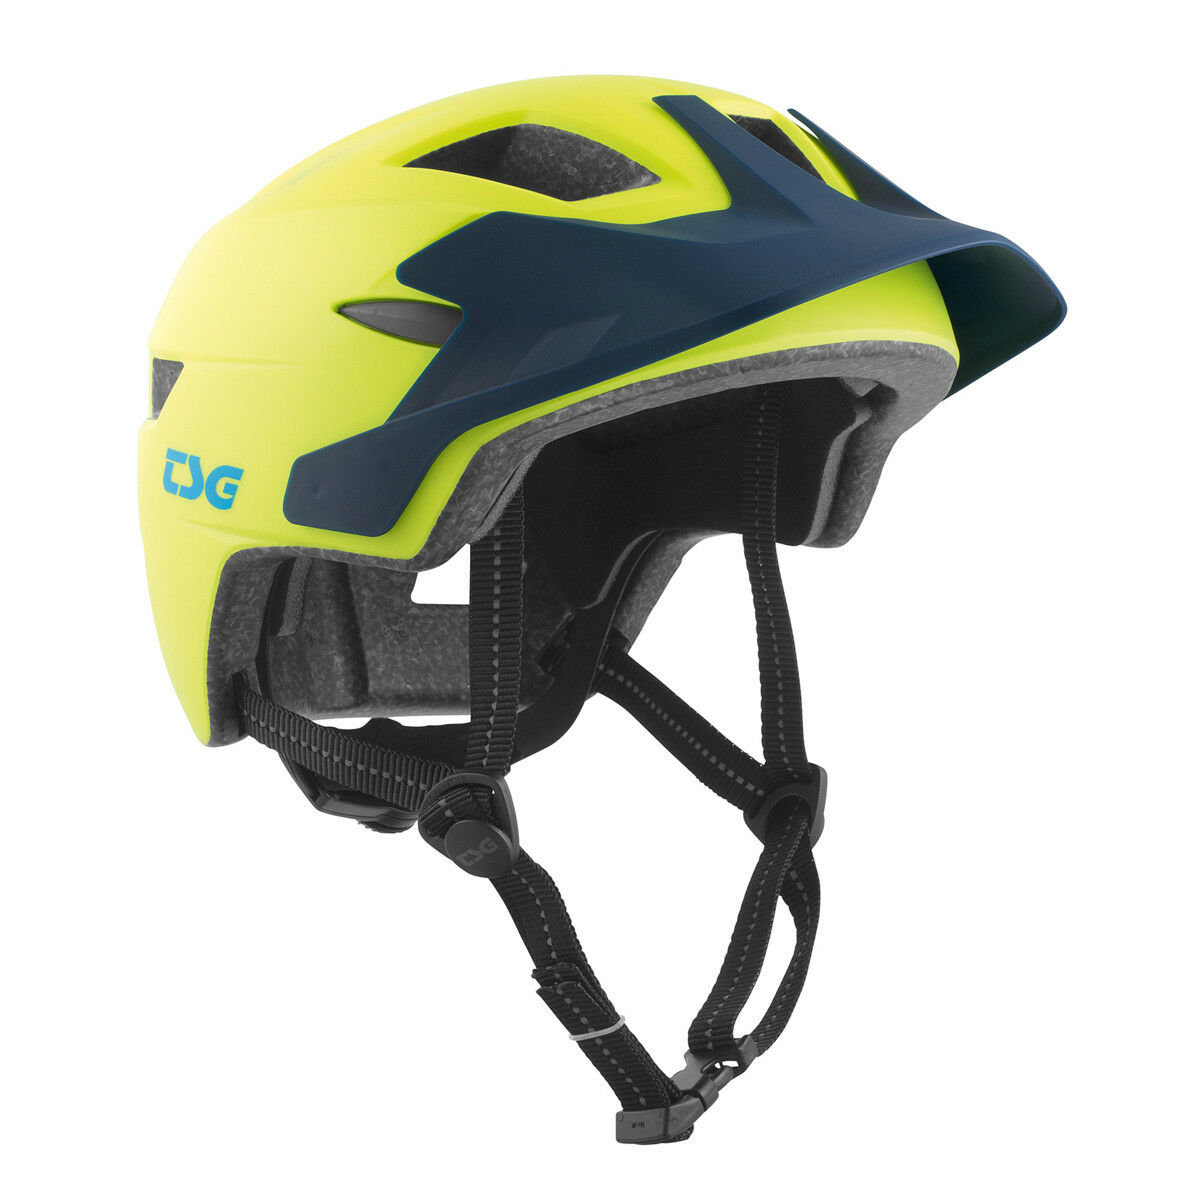 TSG  Cadete Solid color - Helmet for Bicycle  quality assurance